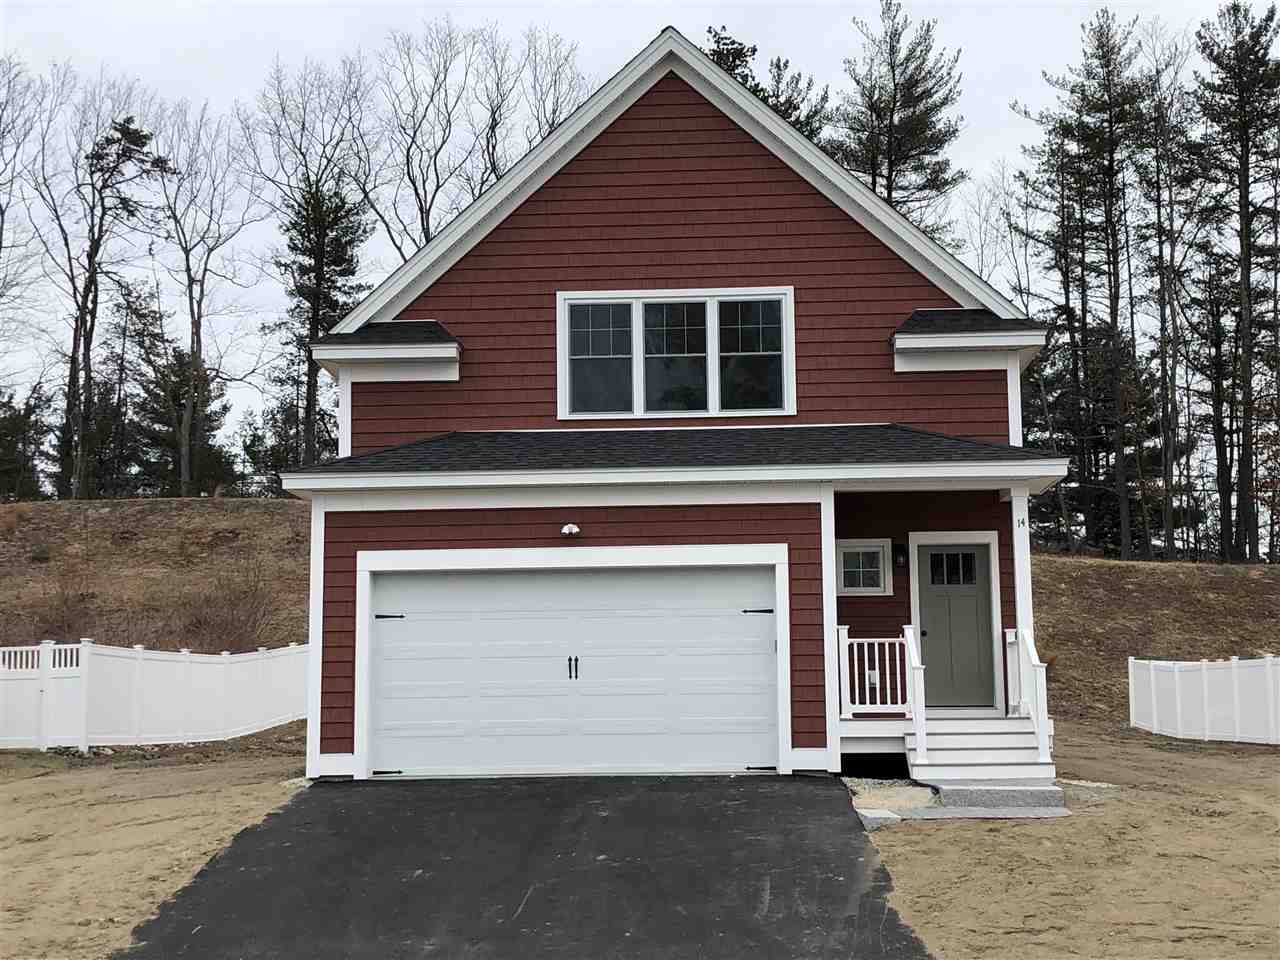 Photo of 14 Daybreak Way Newmarket NH 03857